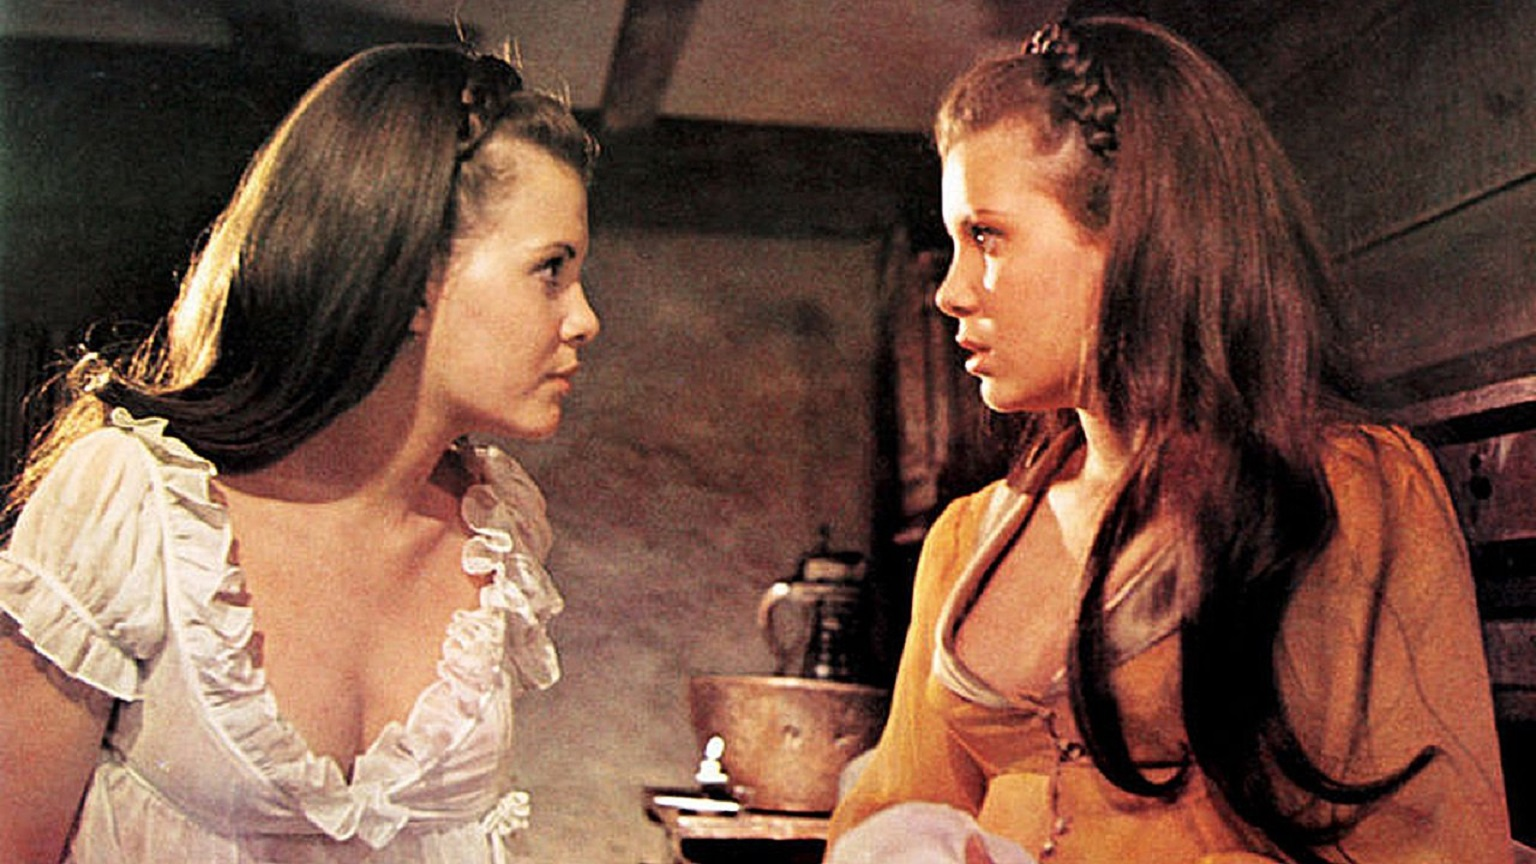 Madeline and Mary Collinson in Twins of Evil (1971)